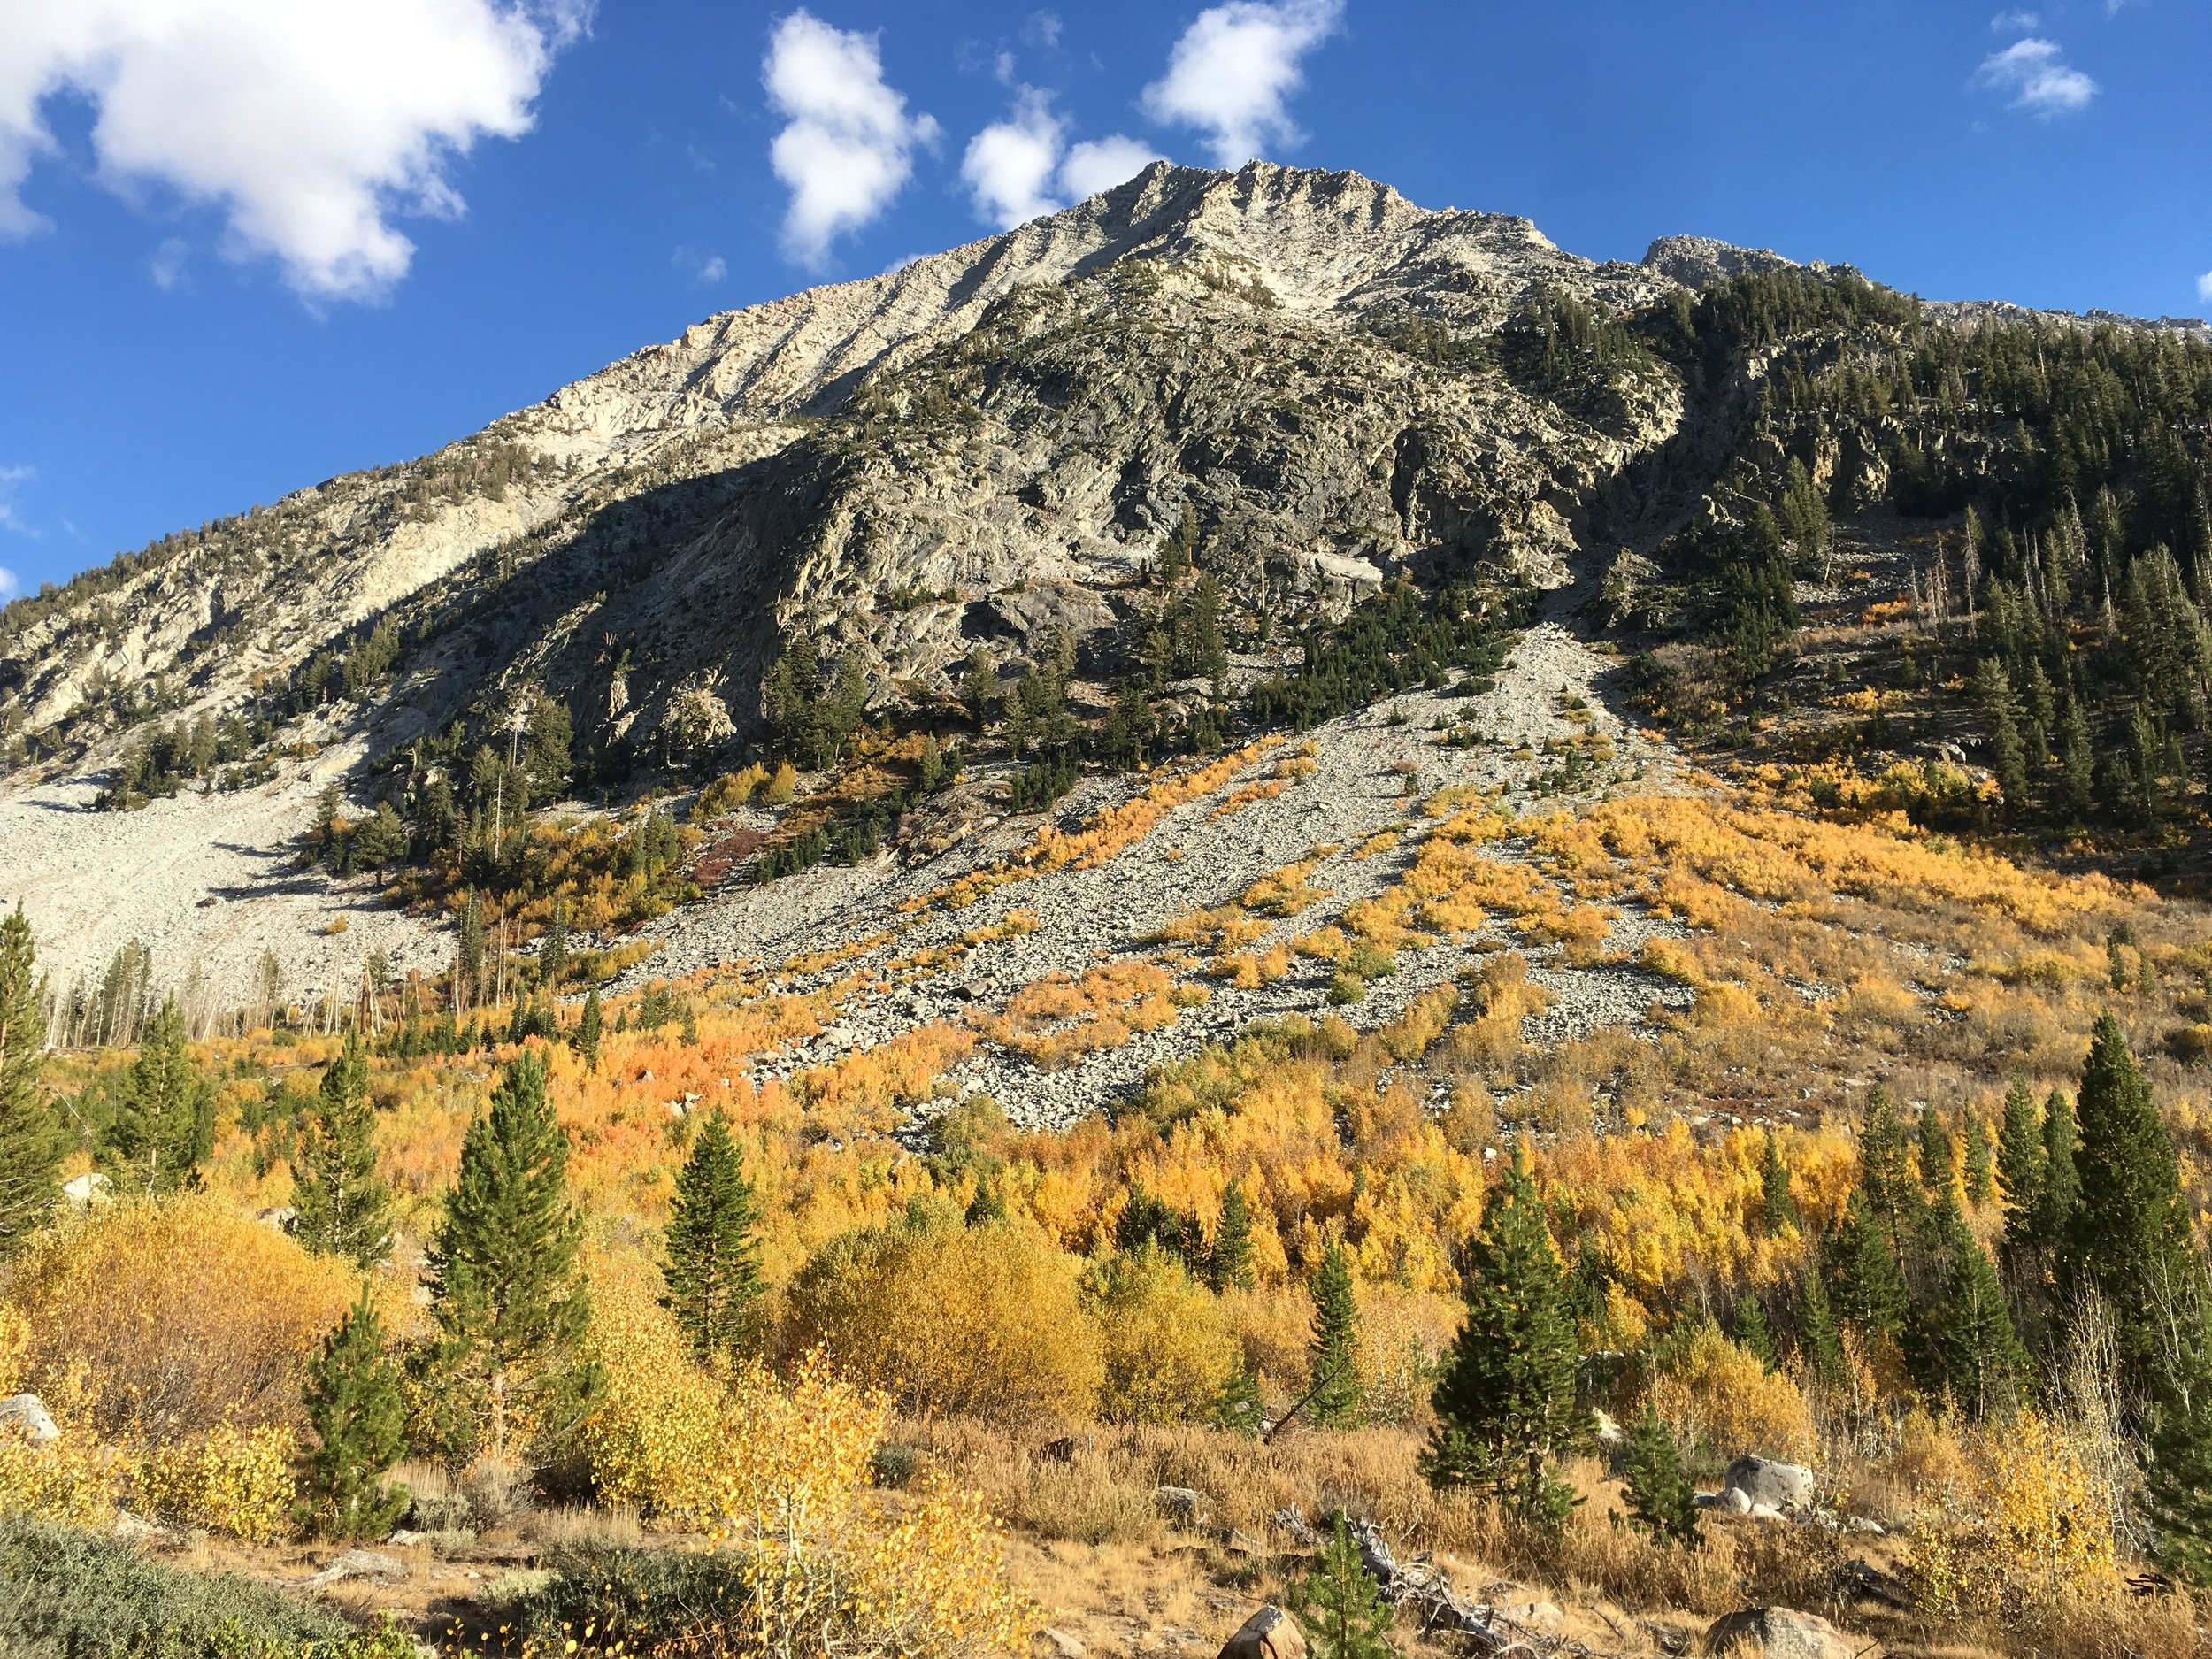 Full fall foliage on display along the canyons as we climbed towards the Golden Staircase.